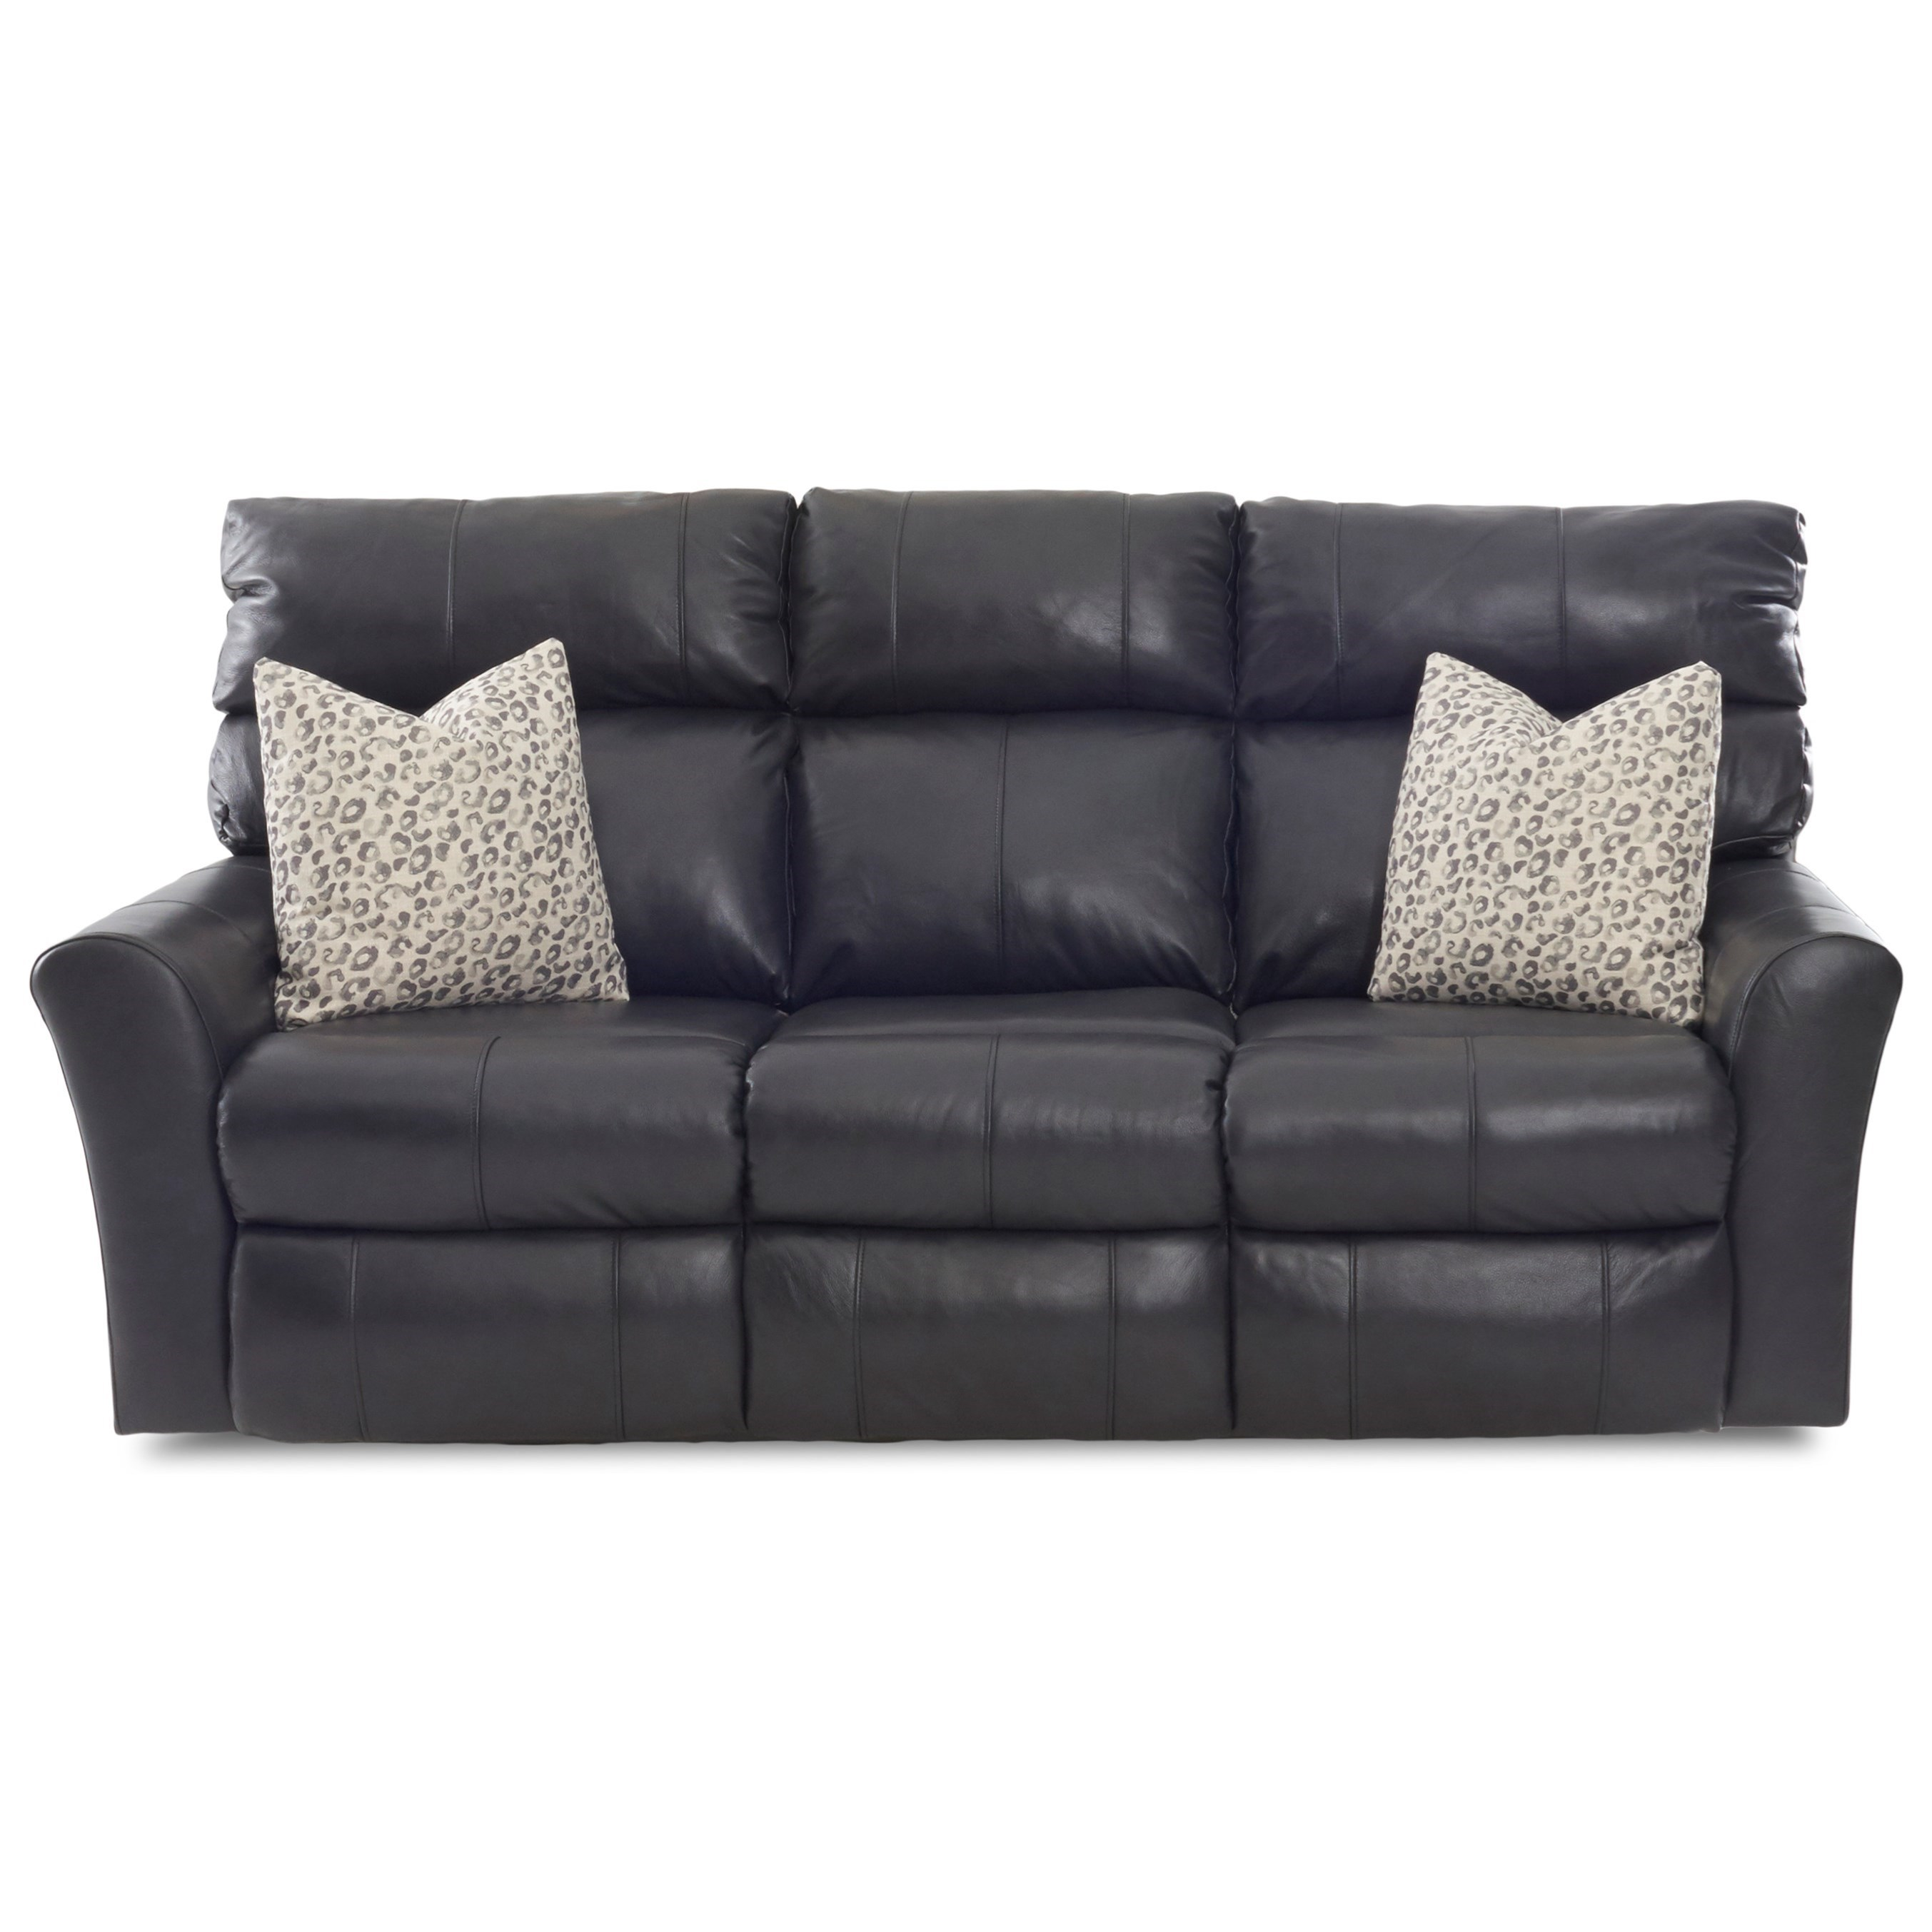 Reclining Sofa (3 Mech) w/ Pillows